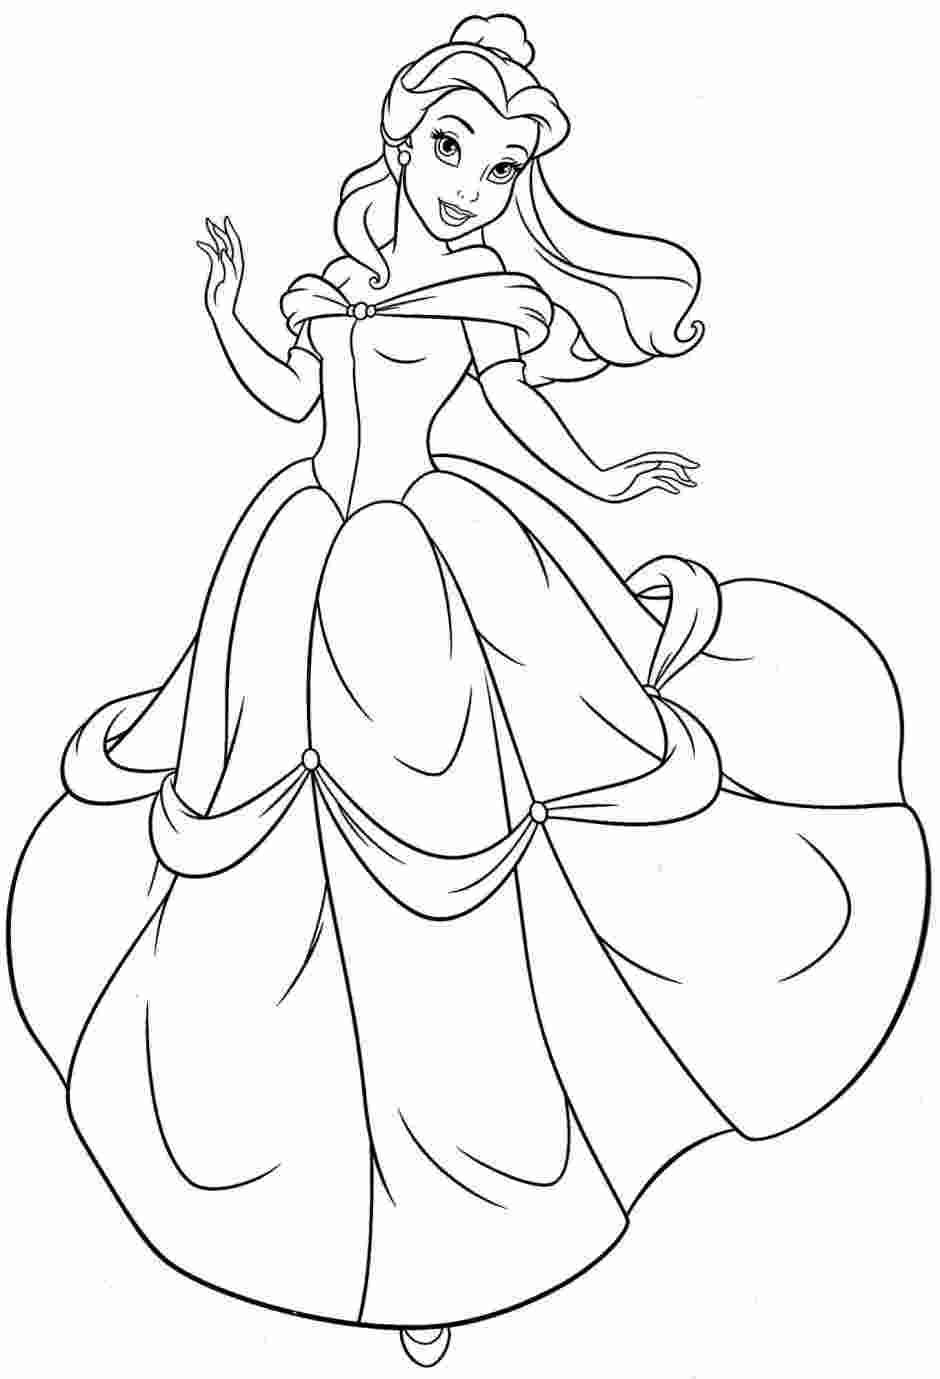 belle coloring sheets free printable belle coloring pages for kids belle sheets coloring 1 1